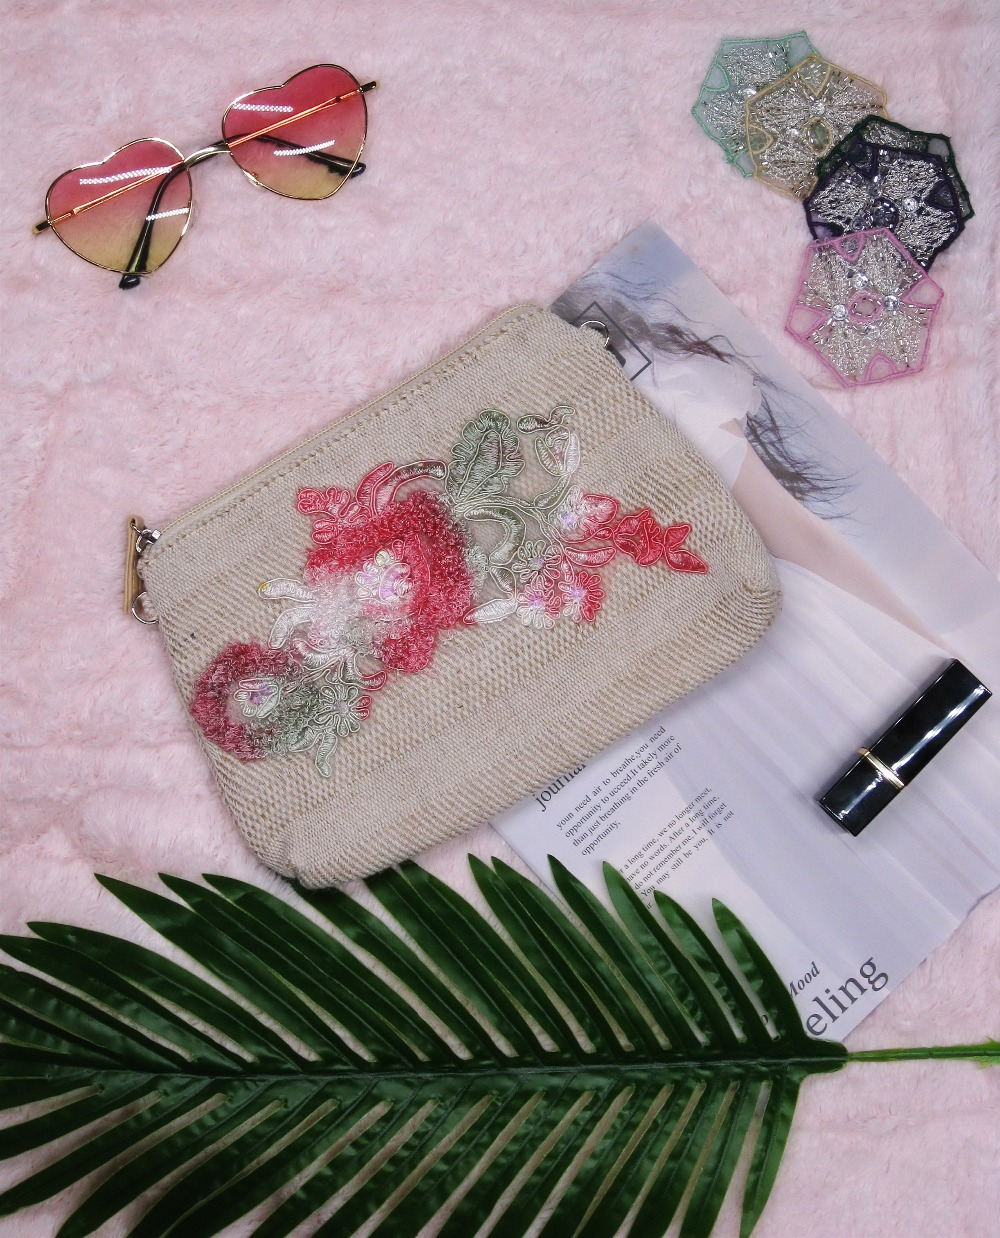 2019 Hand Made New design Handbag Ladies bags Dye Embroidery Rose/Butterfly sequin 2 in 1 Purse Chain shoulder girl Cosmetic bag